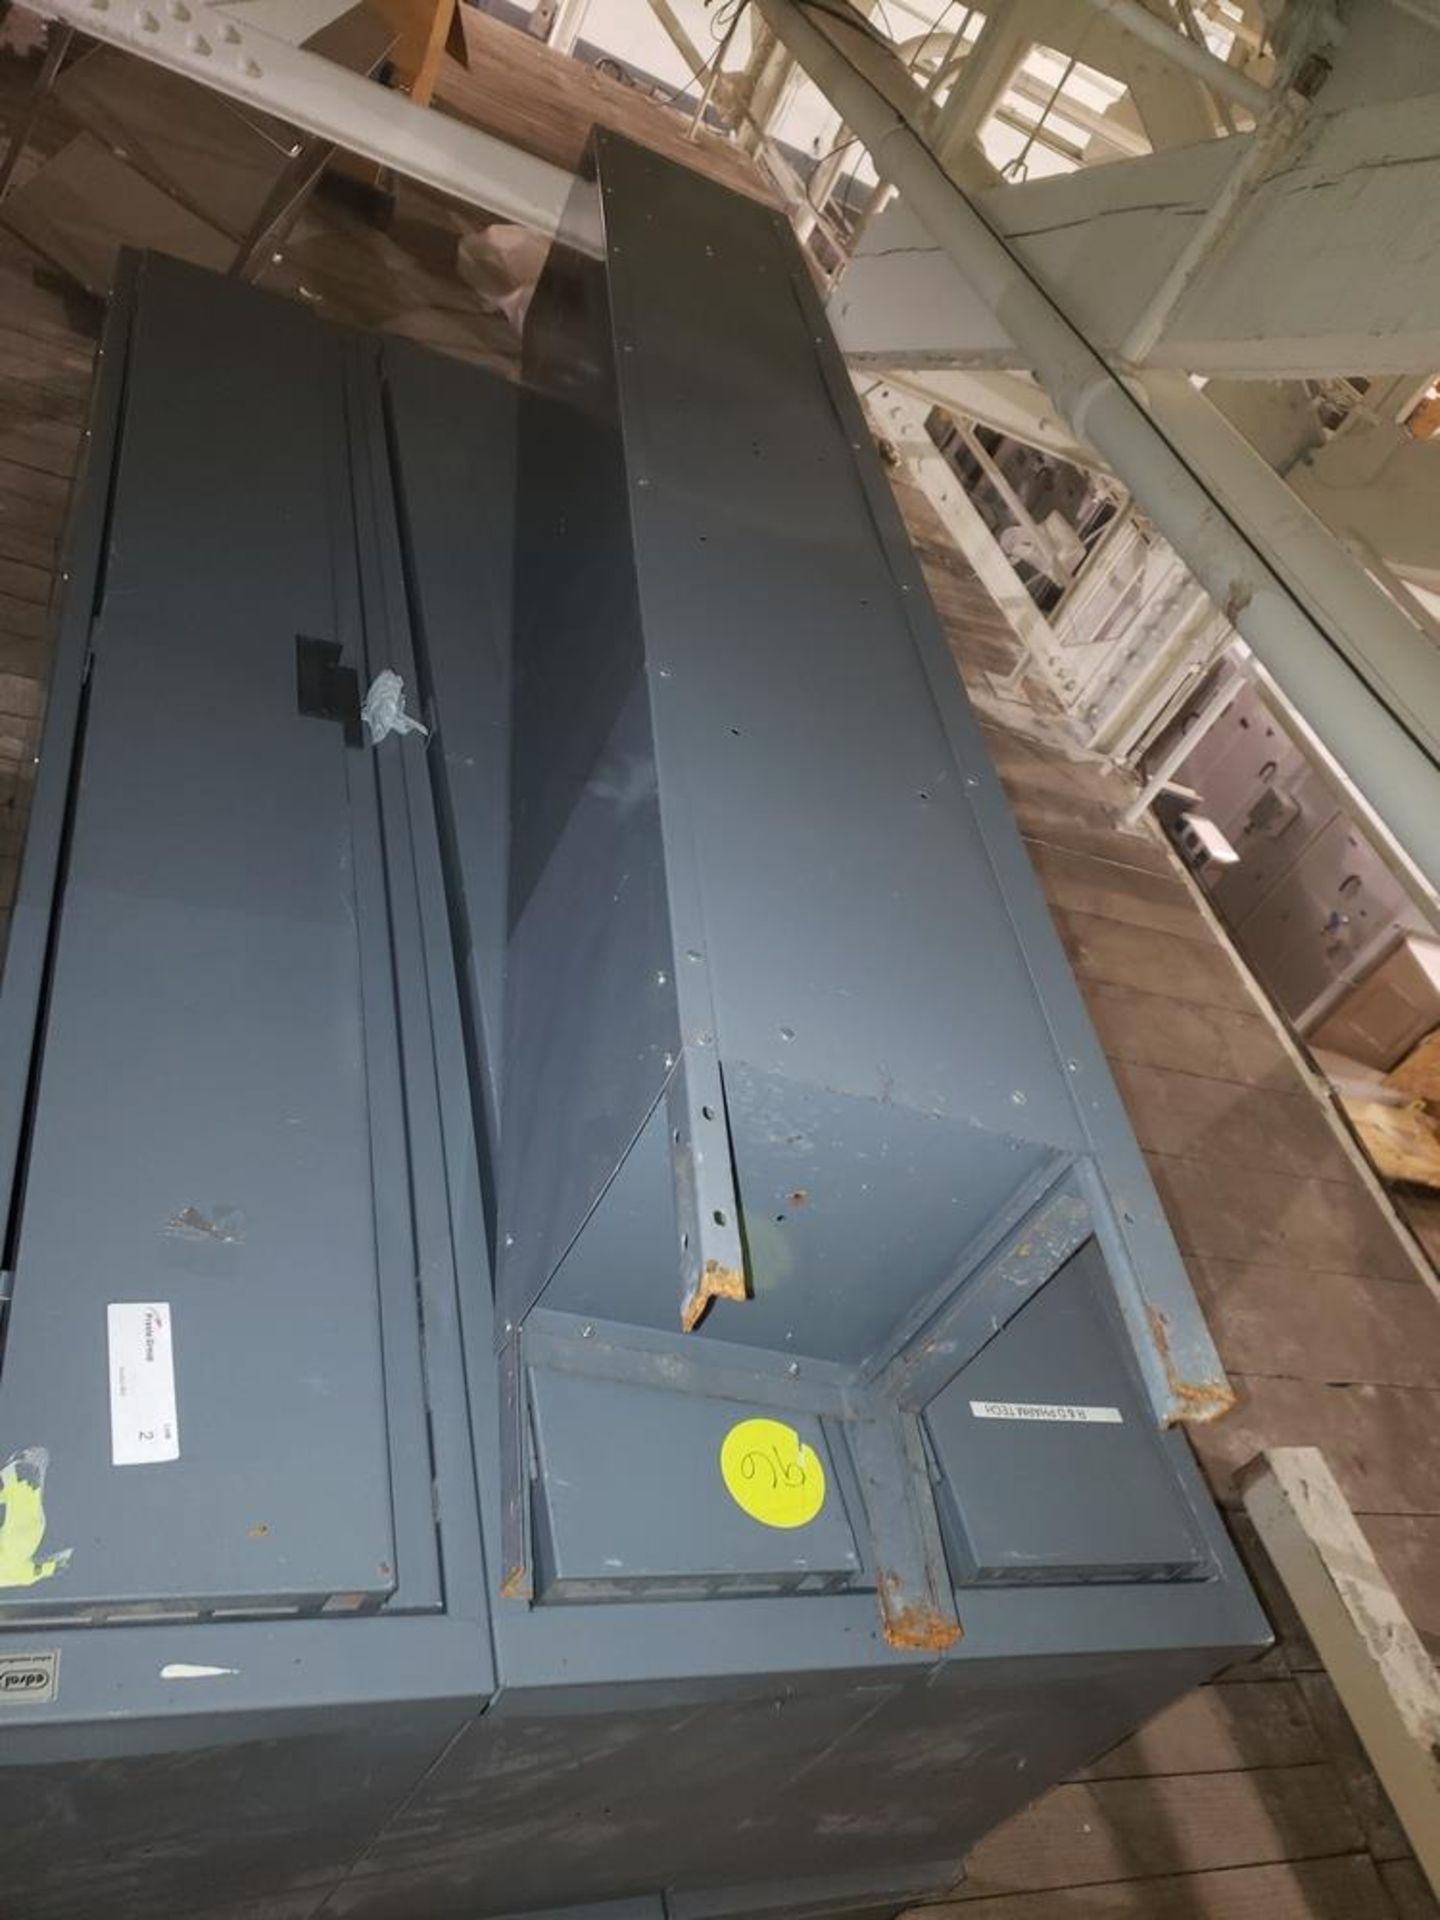 Lot 2 - (2) Sets of (7) doors lockers, (2) sets of 3 lockers with 1 loose